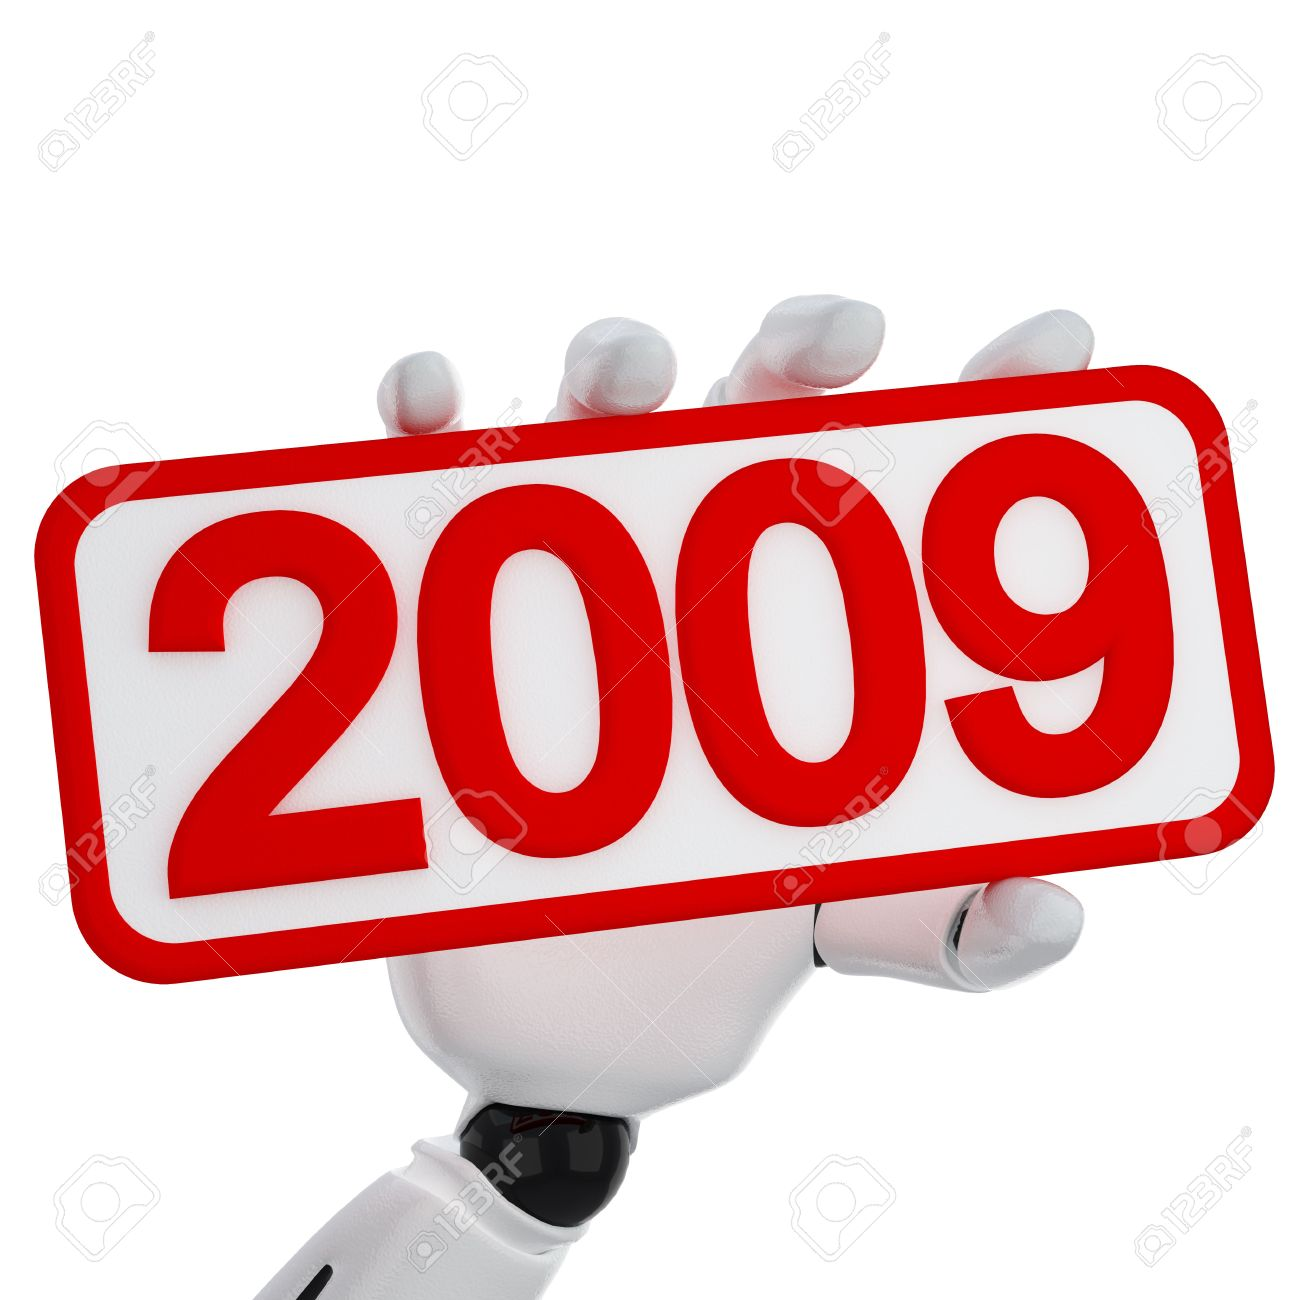 Stock Photo - The robotic hand hold a plate with 2009 number